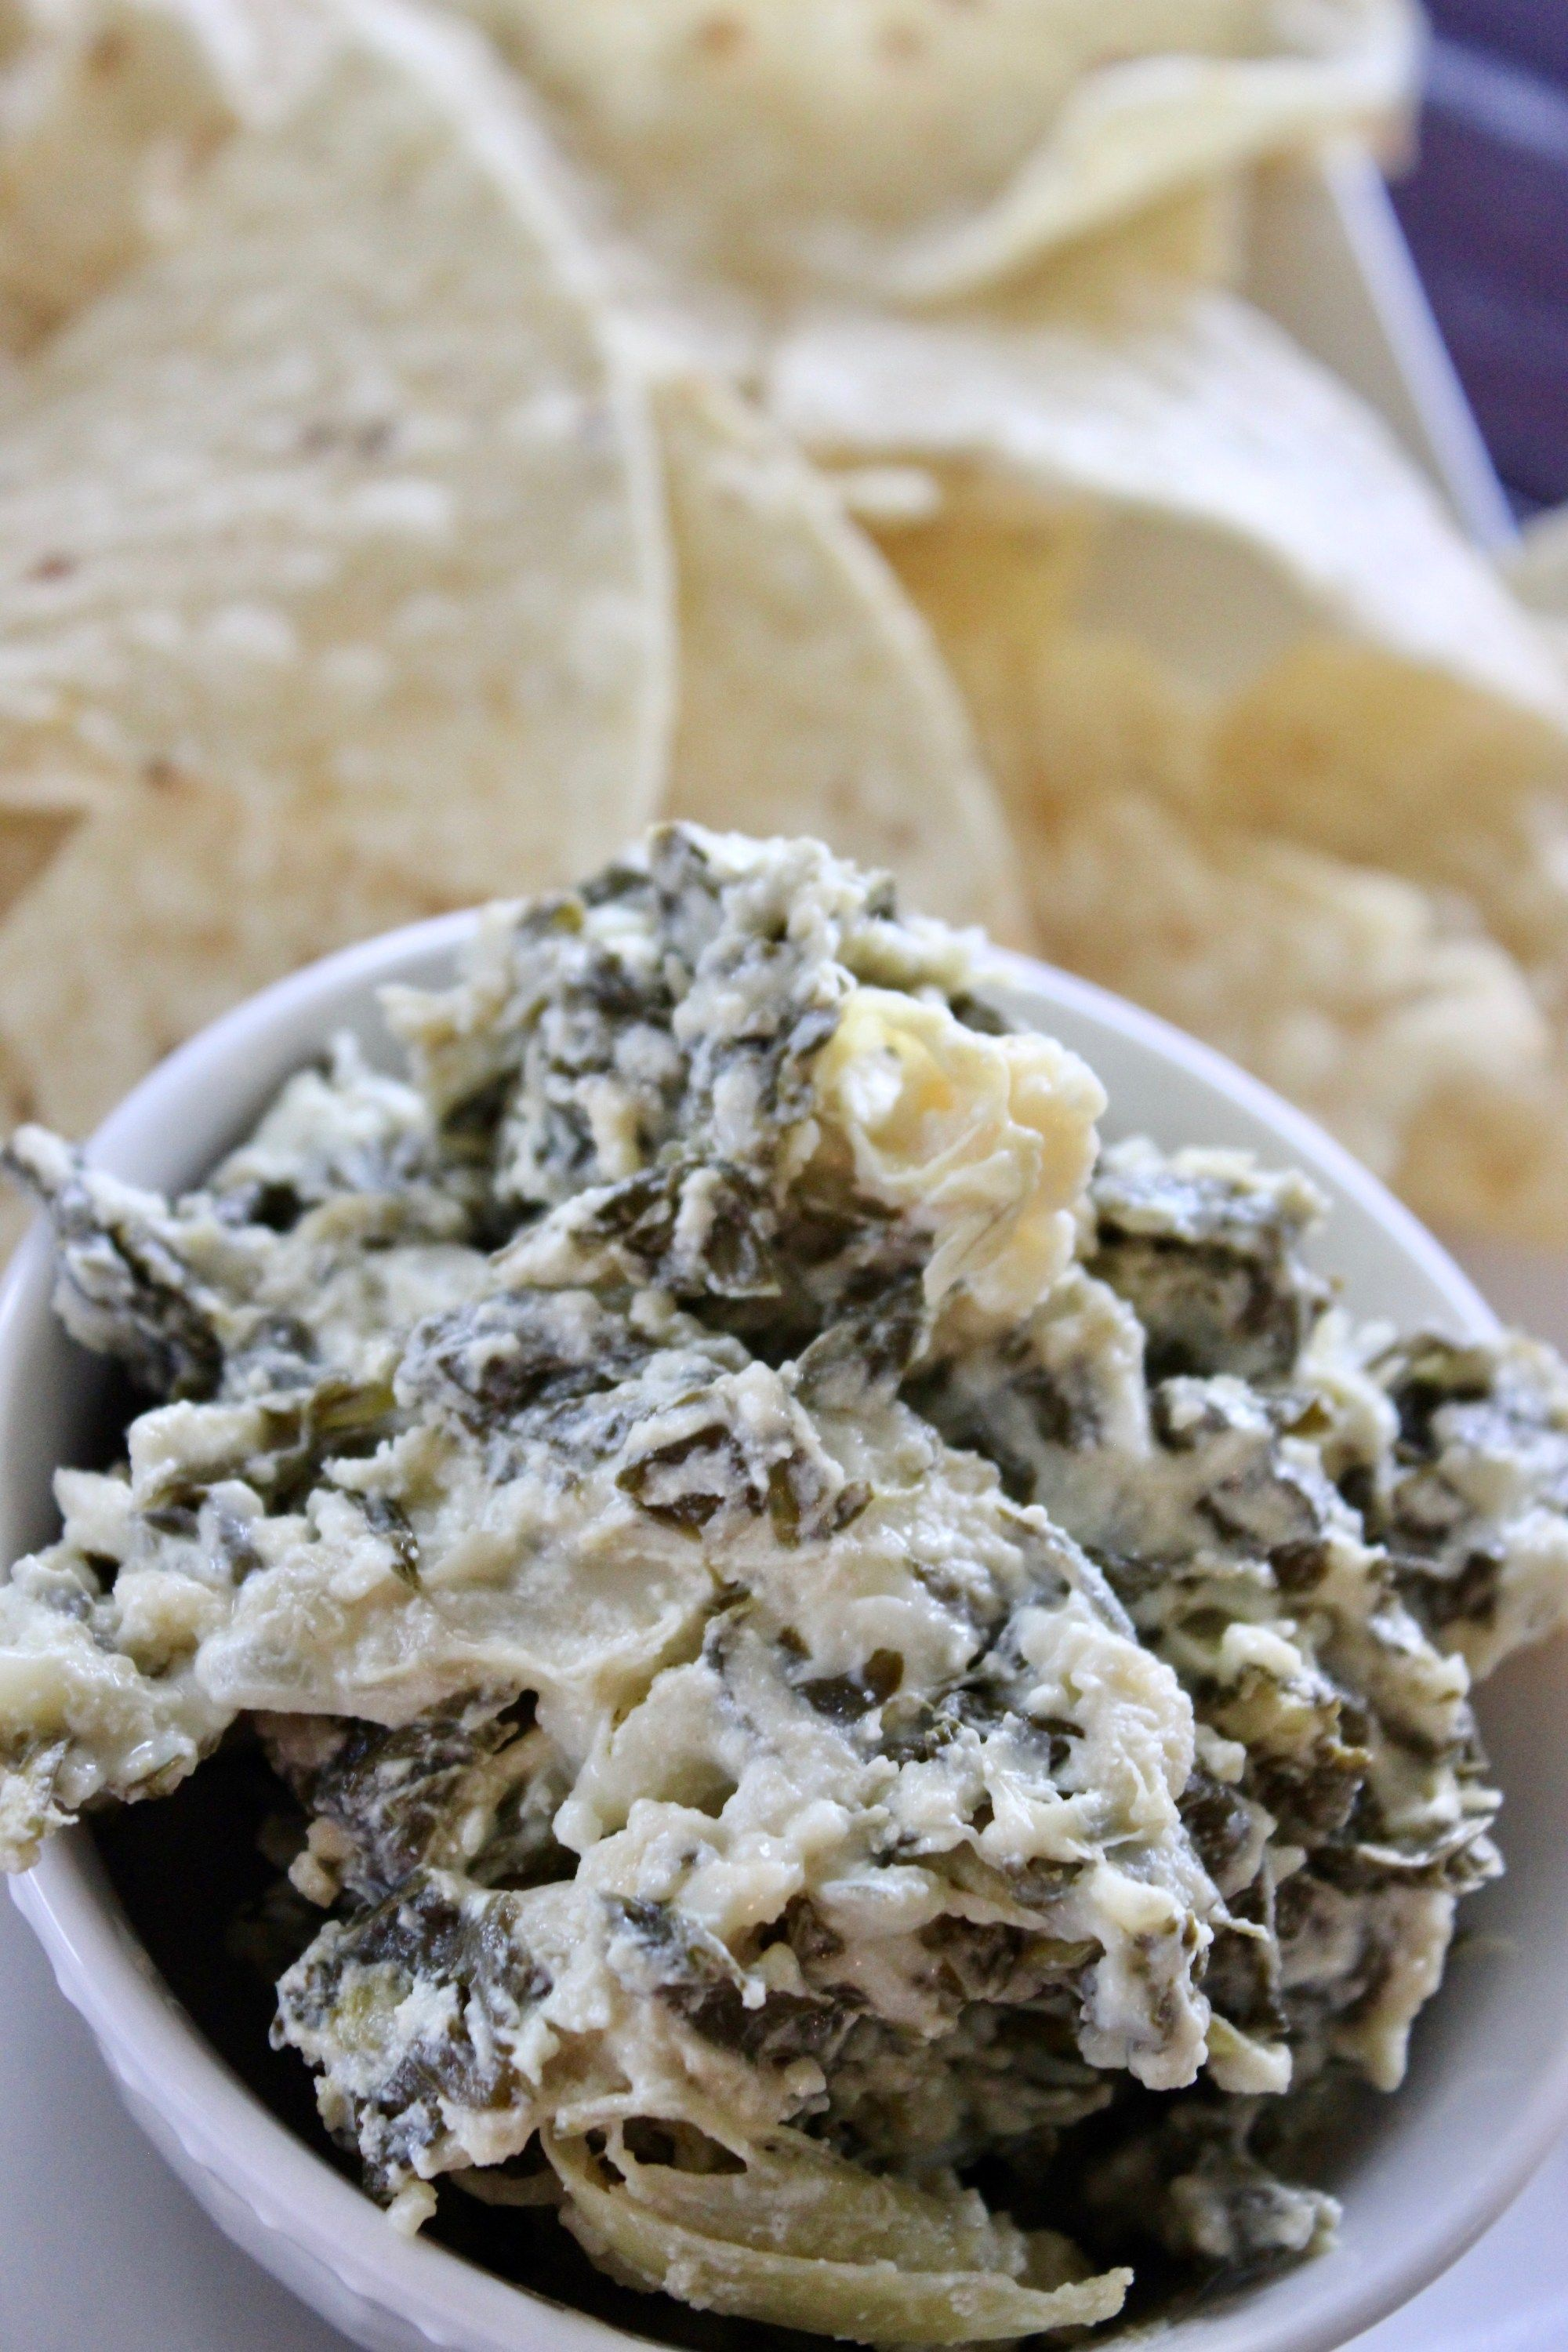 This Spinach and Artichoke Dip Crock Pot Recipe is Applebee's to the Tee! #crockpotspinachandartichokedip This Spinach and Artichoke Dip Crock Pot Recipe is Applebee's to the Tee! #crockpotspinachandartichokedip This Spinach and Artichoke Dip Crock Pot Recipe is Applebee's to the Tee! #crockpotspinachandartichokedip This Spinach and Artichoke Dip Crock Pot Recipe is Applebee's to the Tee! #crockpotspinachandartichokedip